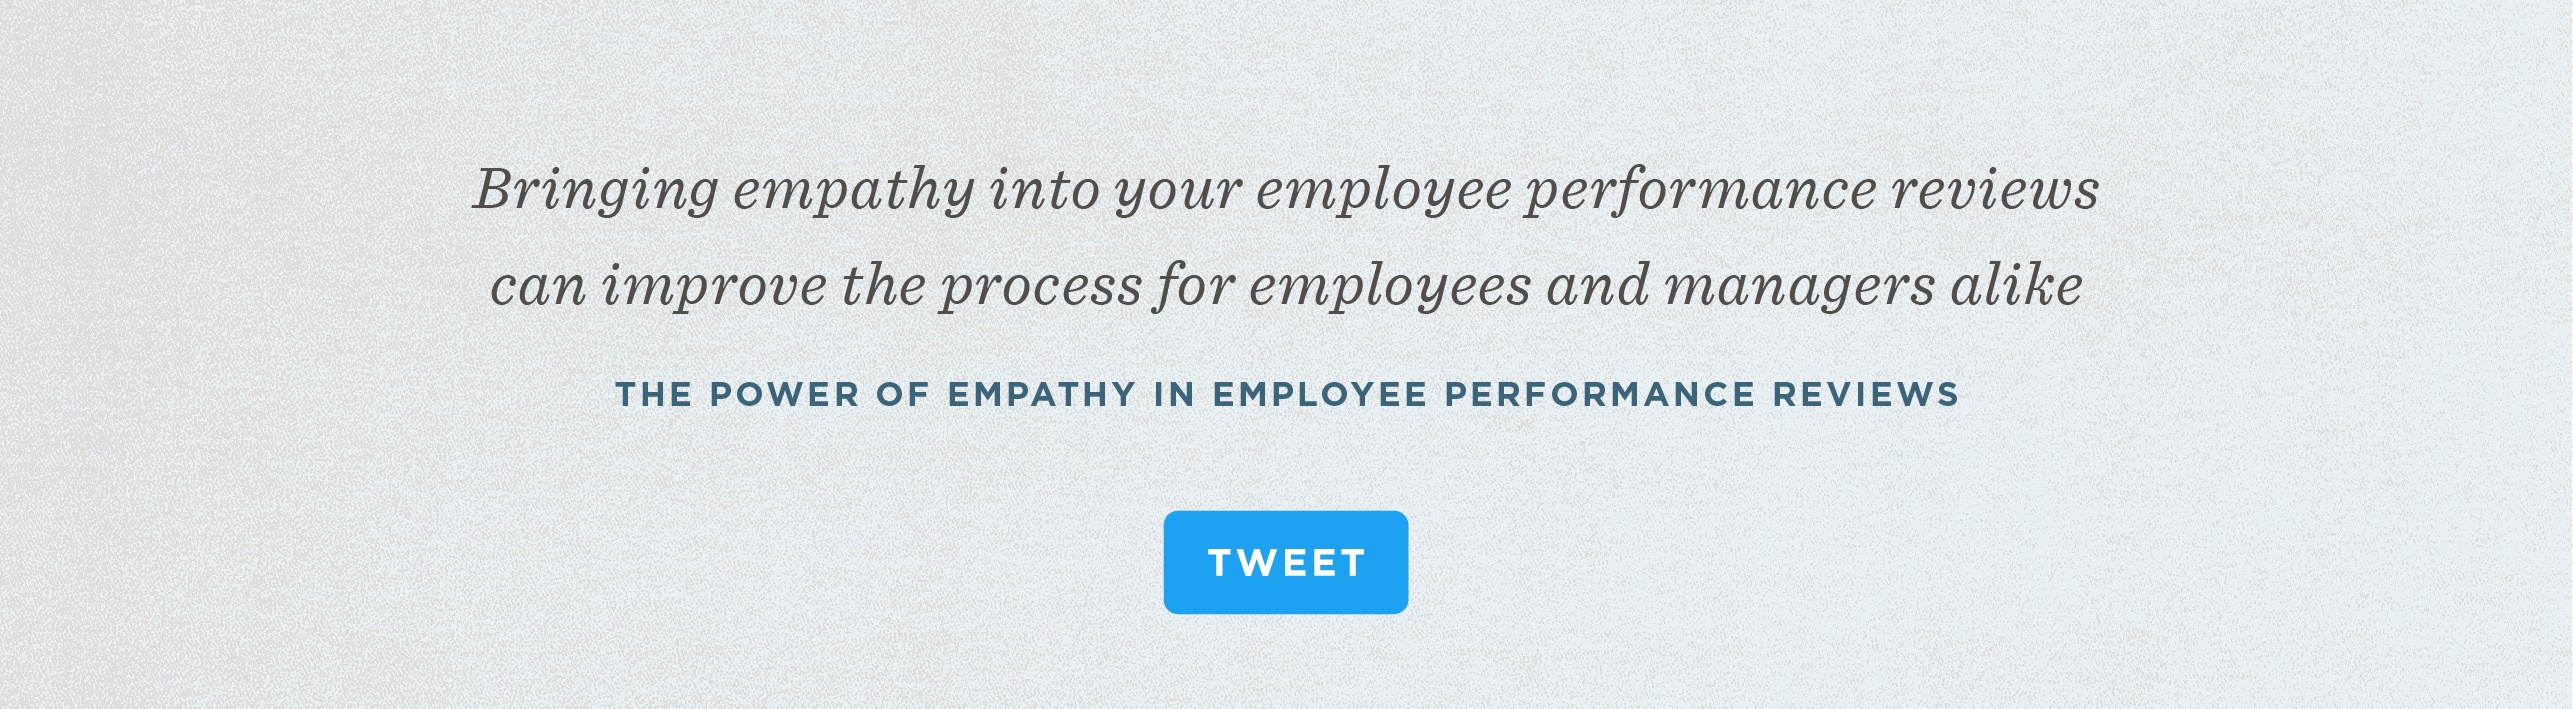 The Power Of Empathy In Employee Performance Reviews